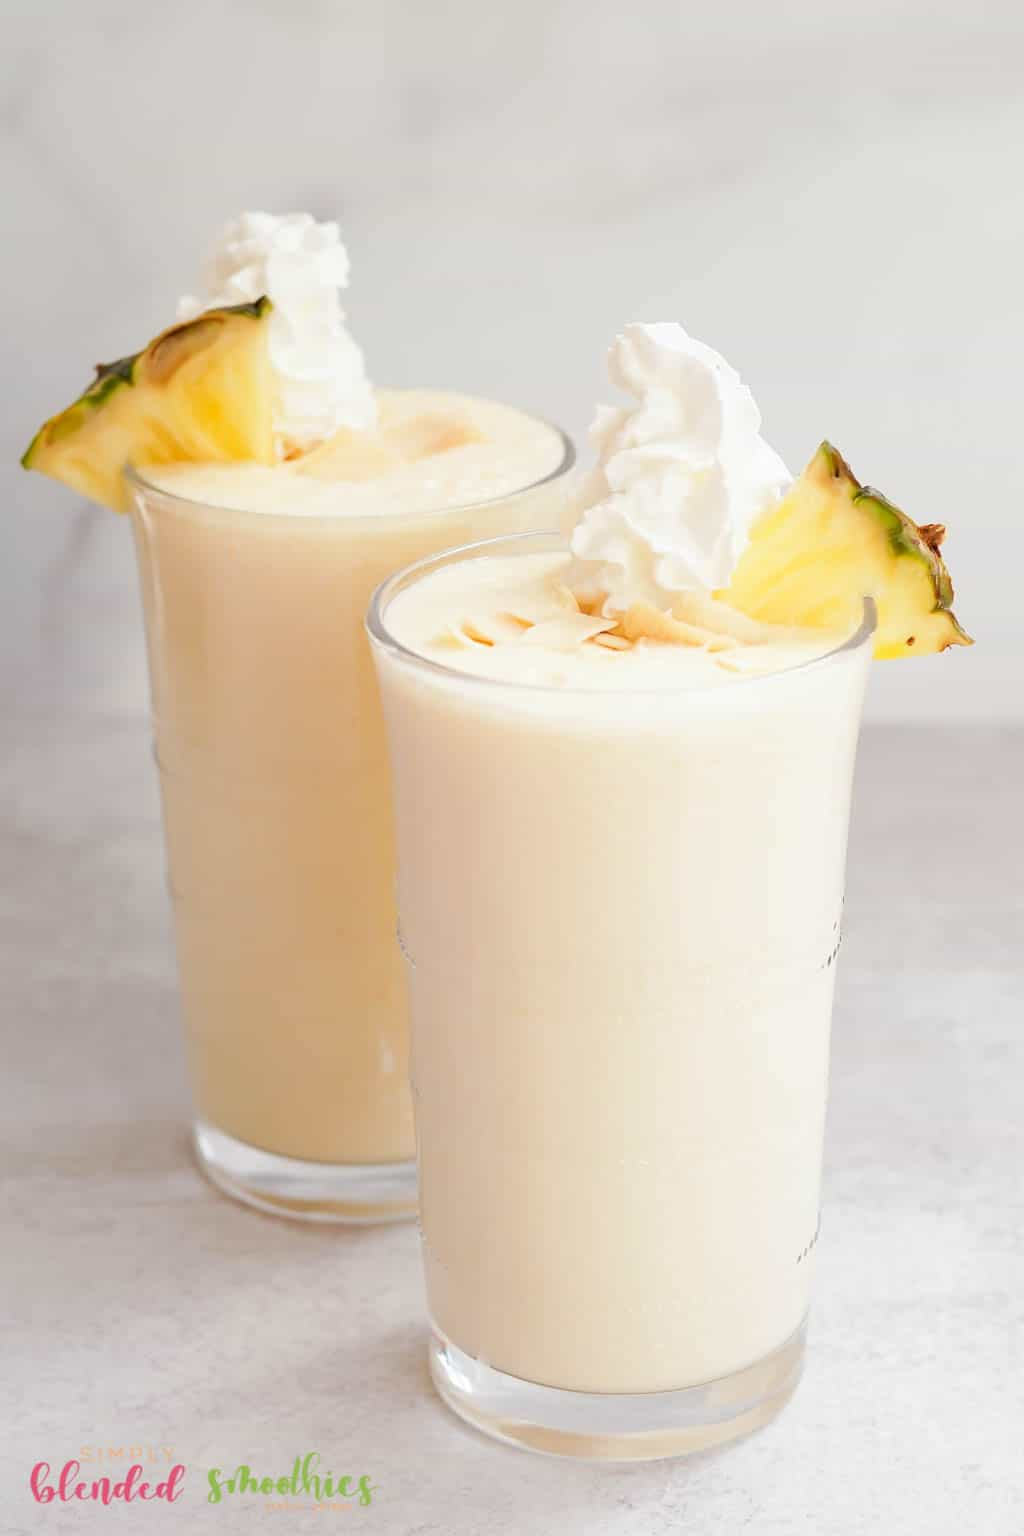 milkshake made with pineapple